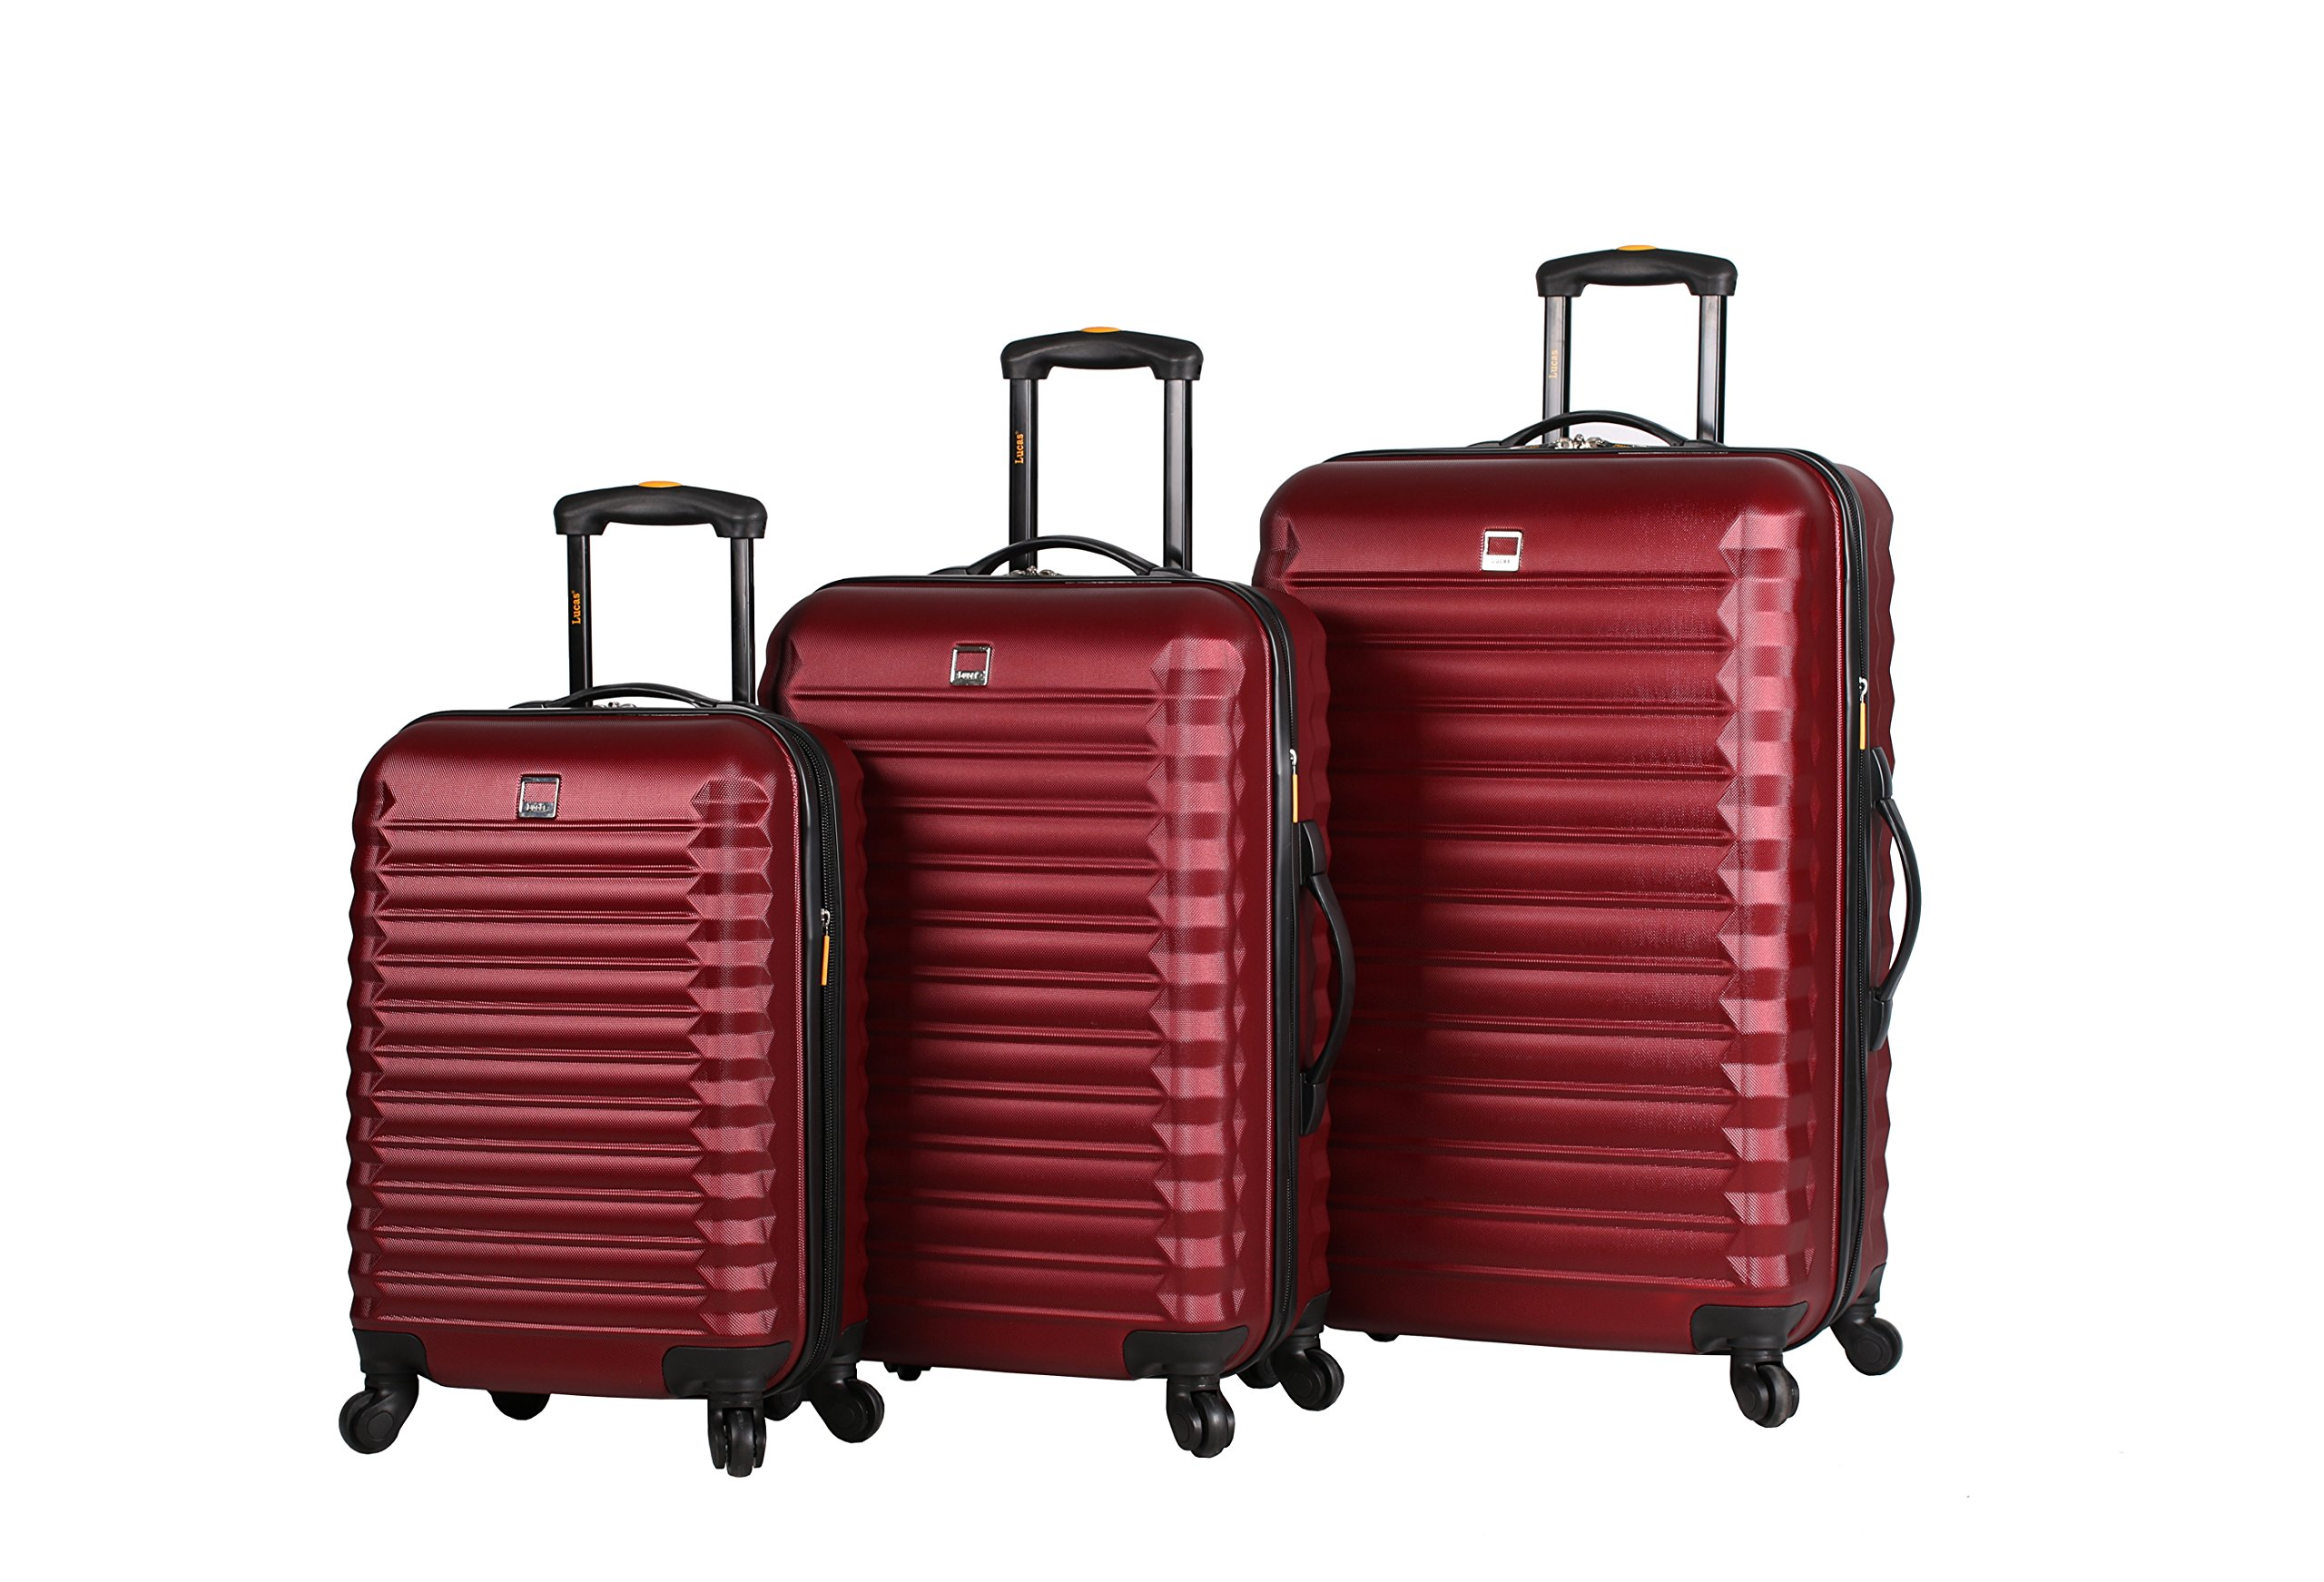 Lucas ABS Hard Case 3 Piece Rolling Suitcase Sets With Spinner Wheels (One Size, Burgundy)